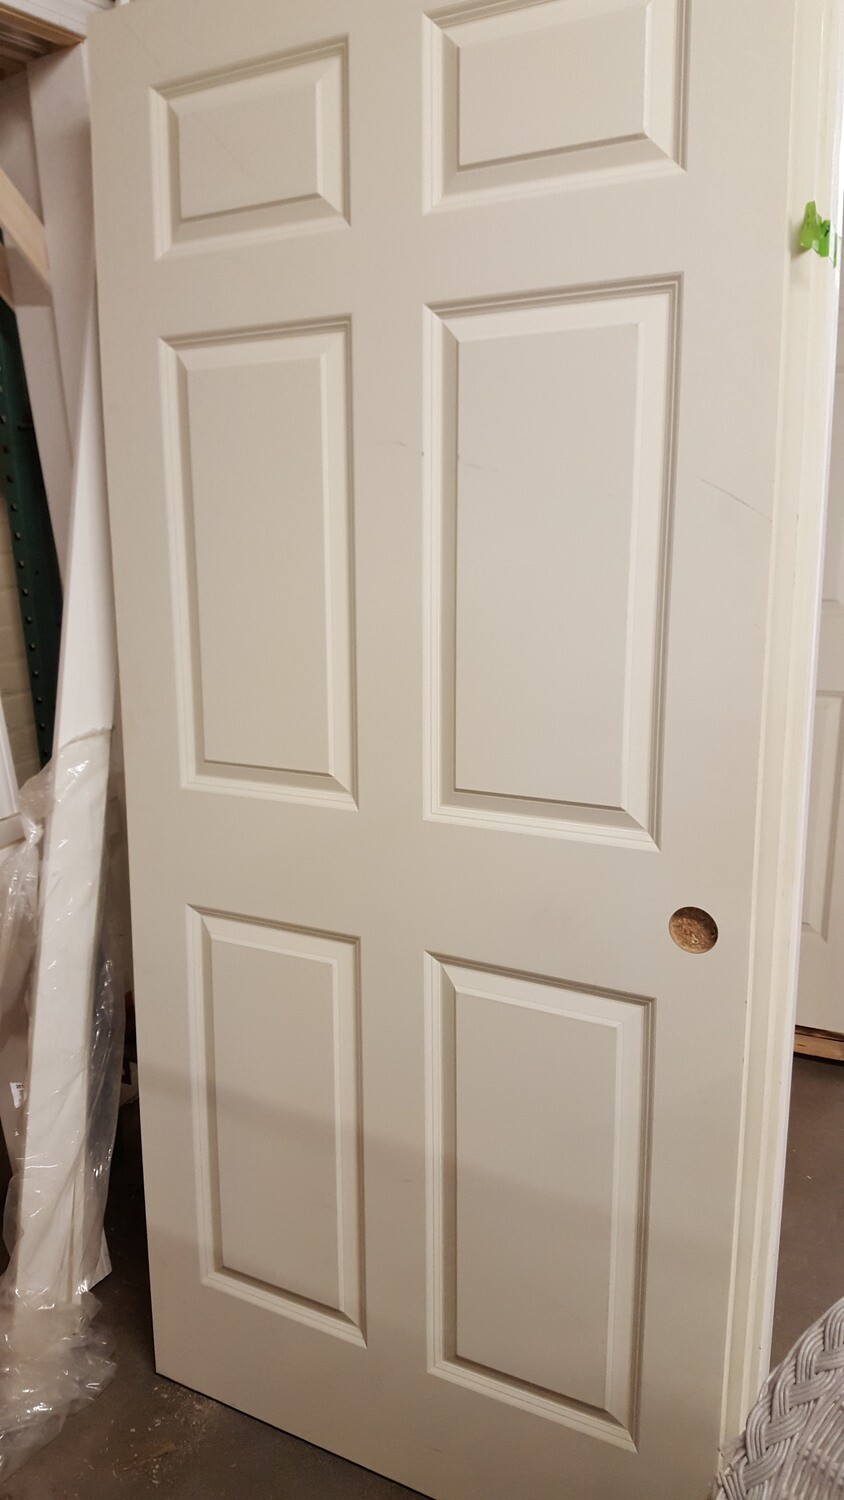 Double closet doors with frame, new (BL)